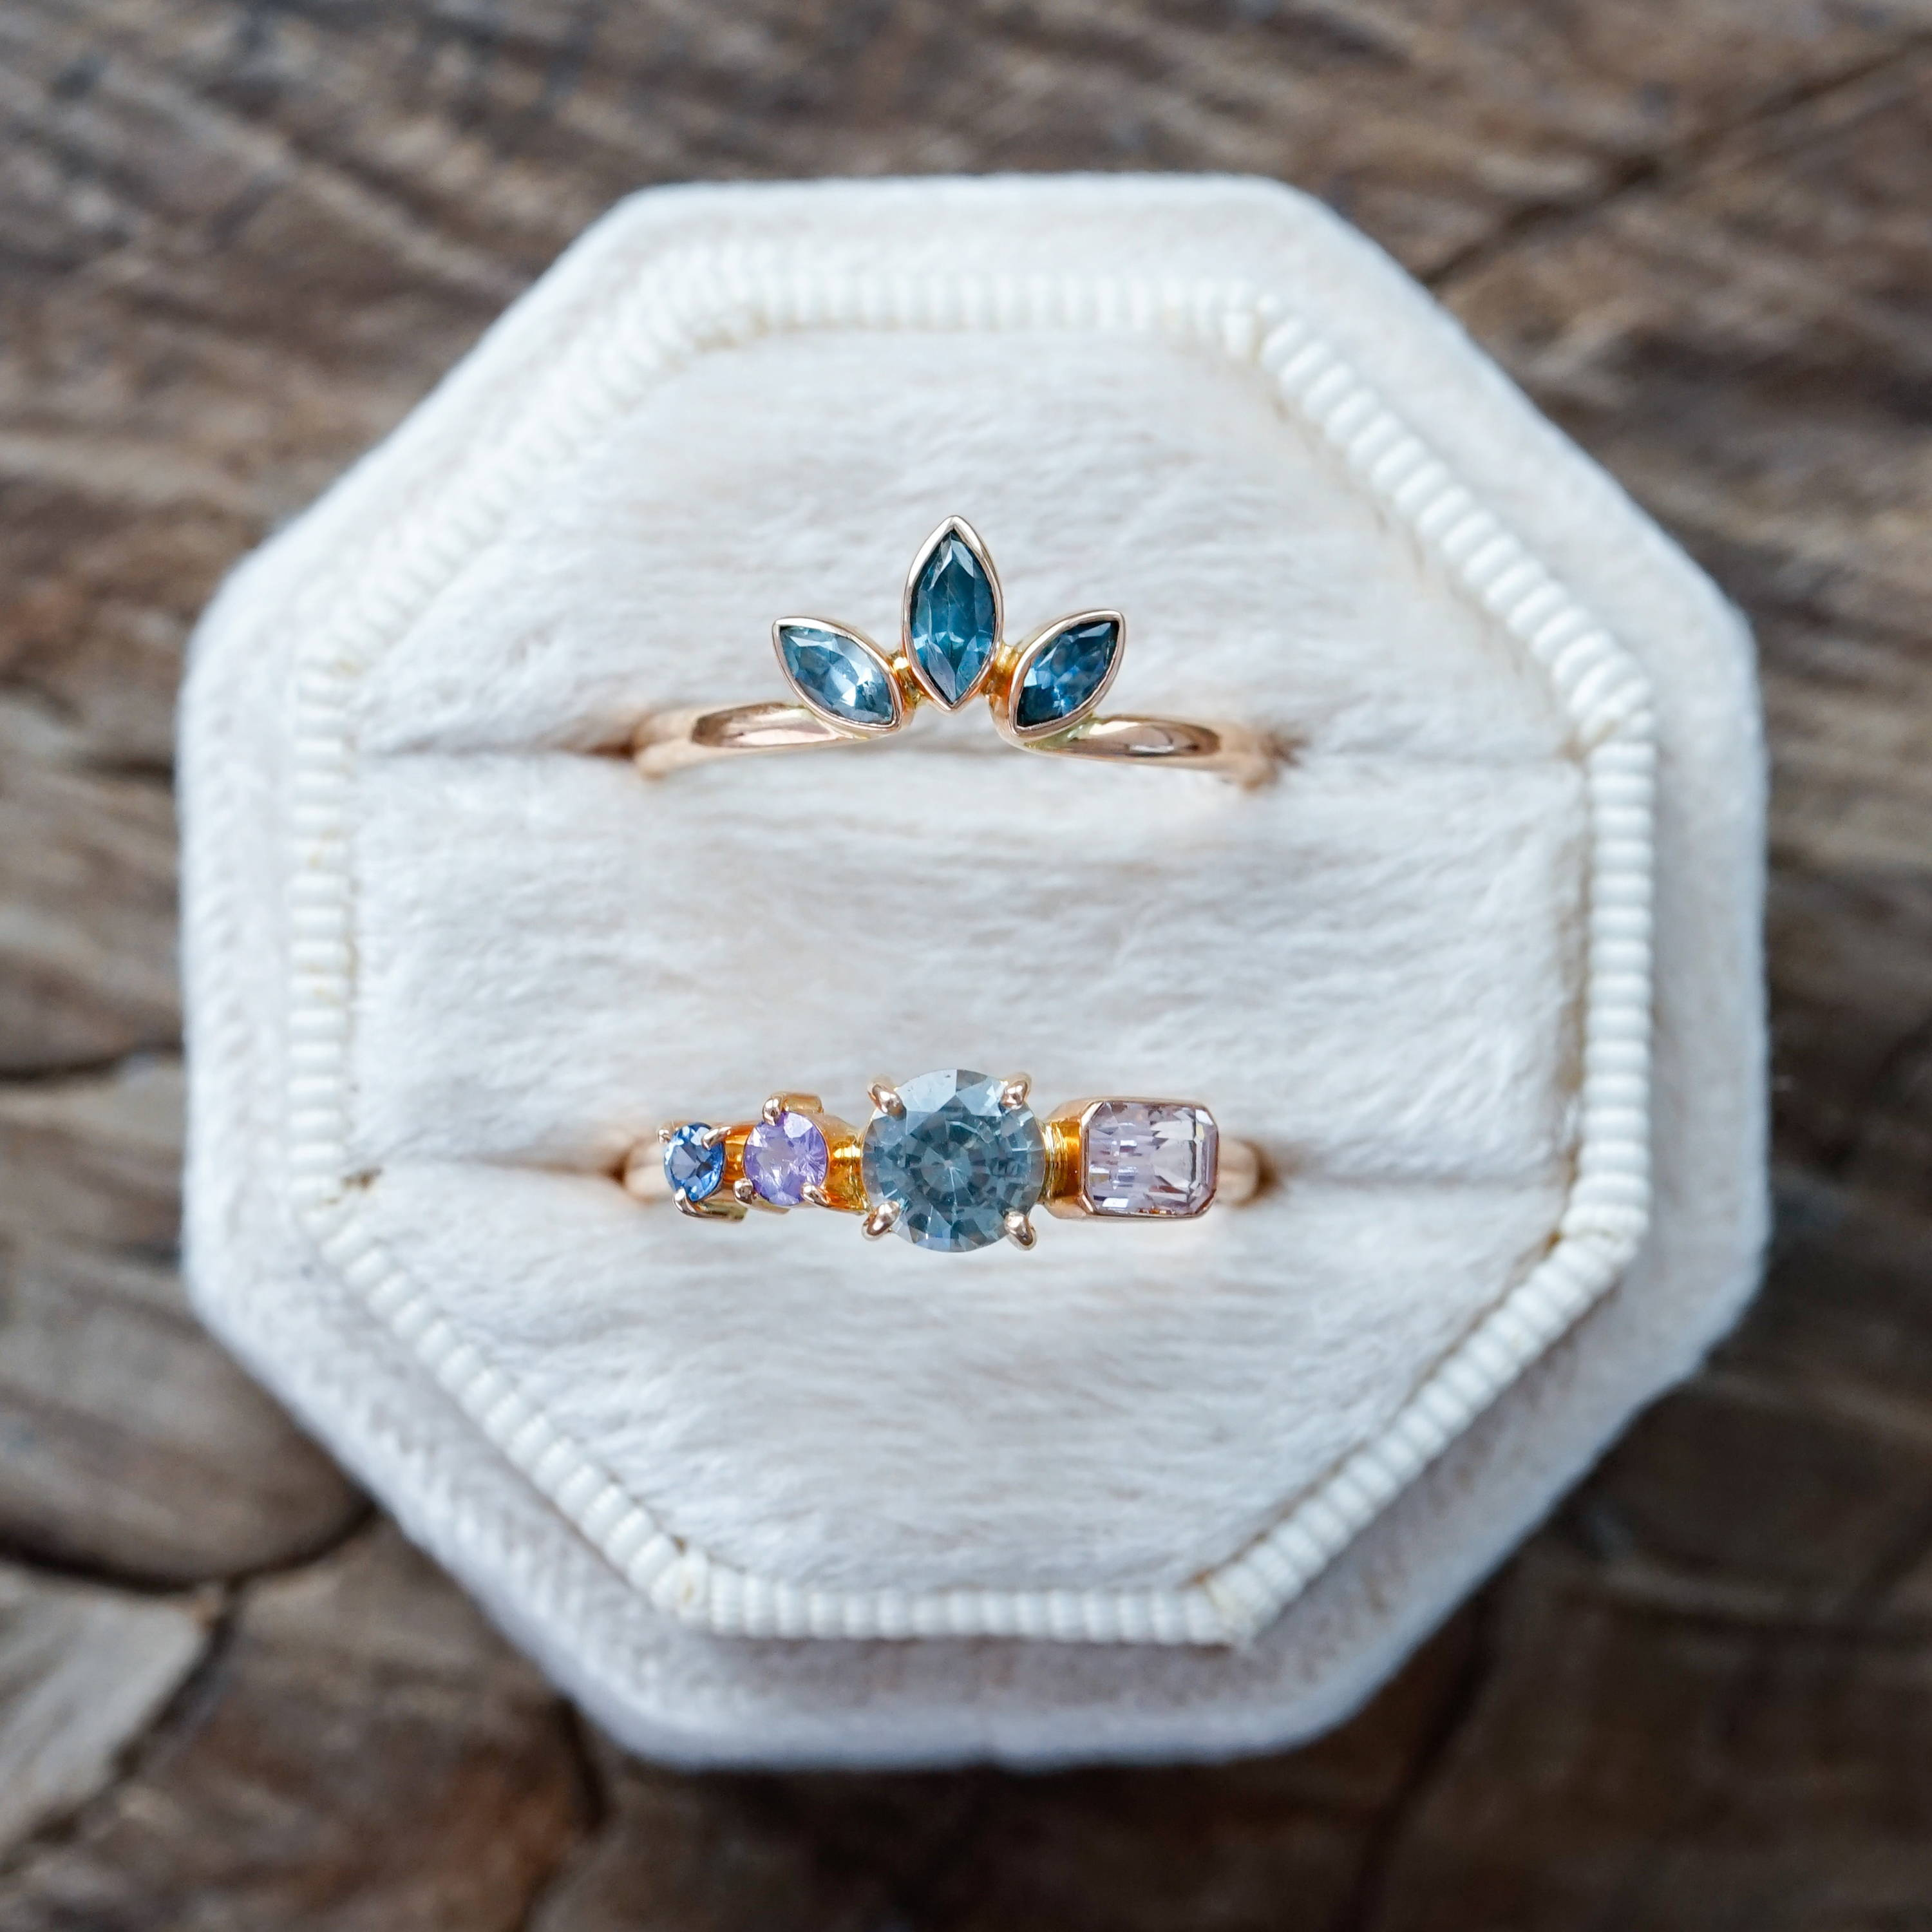 Pastel sapphires ethical gold ring set, perfect for a bridal set.